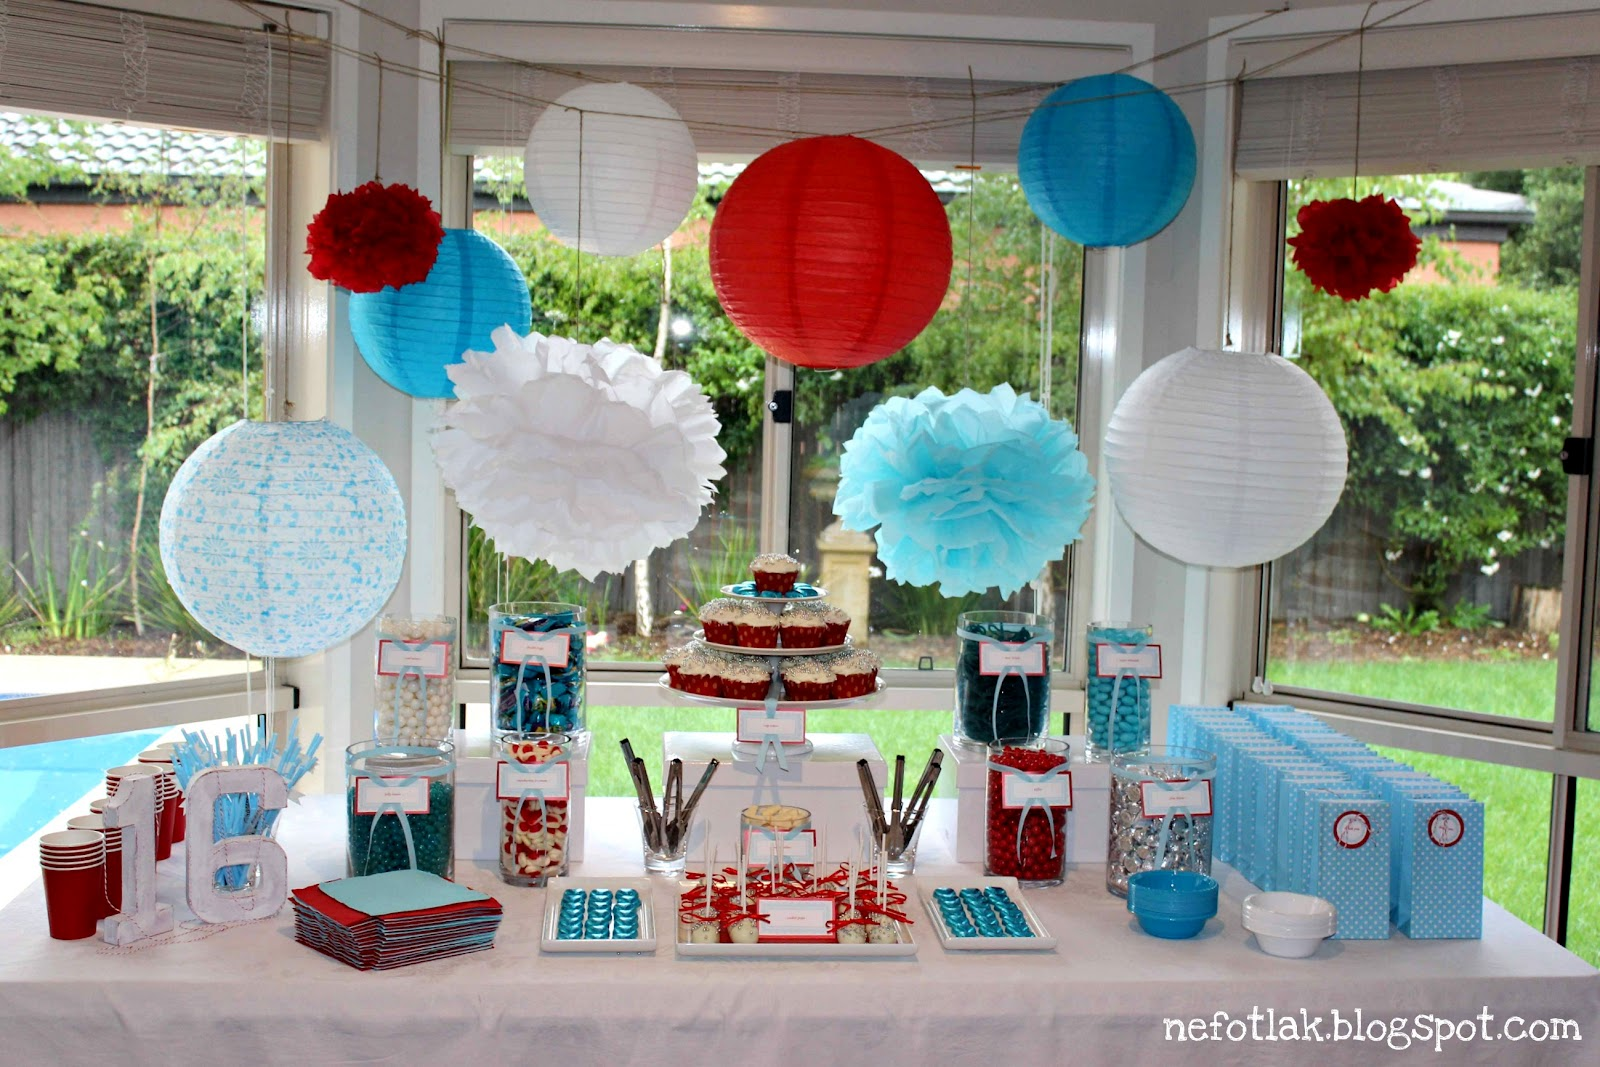 Nefotlak 16th b 39 day party candy bar dessert table for B day decoration ideas